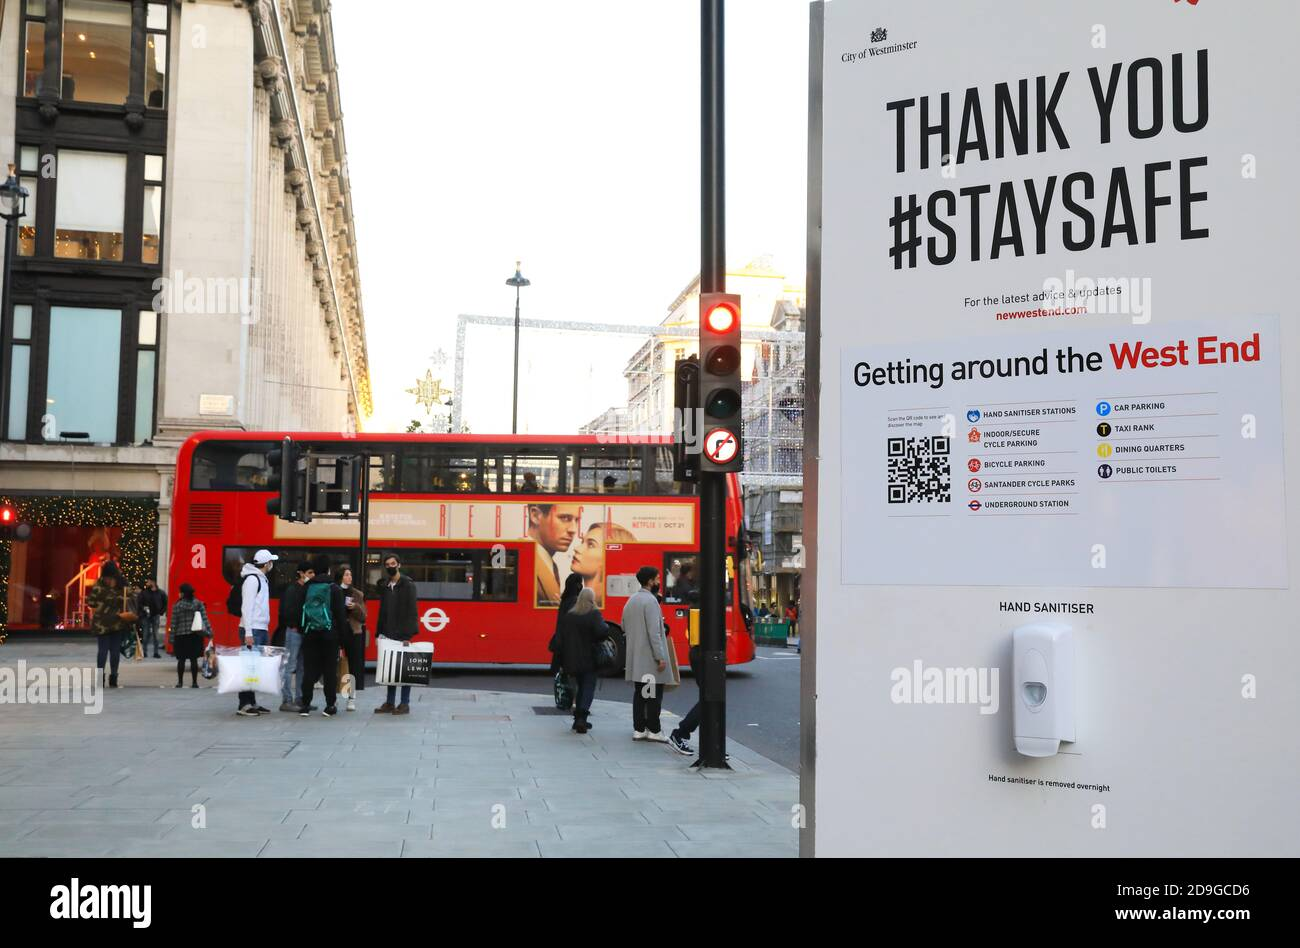 Oxford Street busy with people doing their Christmas shopping on Nov 4th 2020, before shops close in the 2nd national lockdown for Covid-19 on Nov 5th, in London, UK Stock Photo